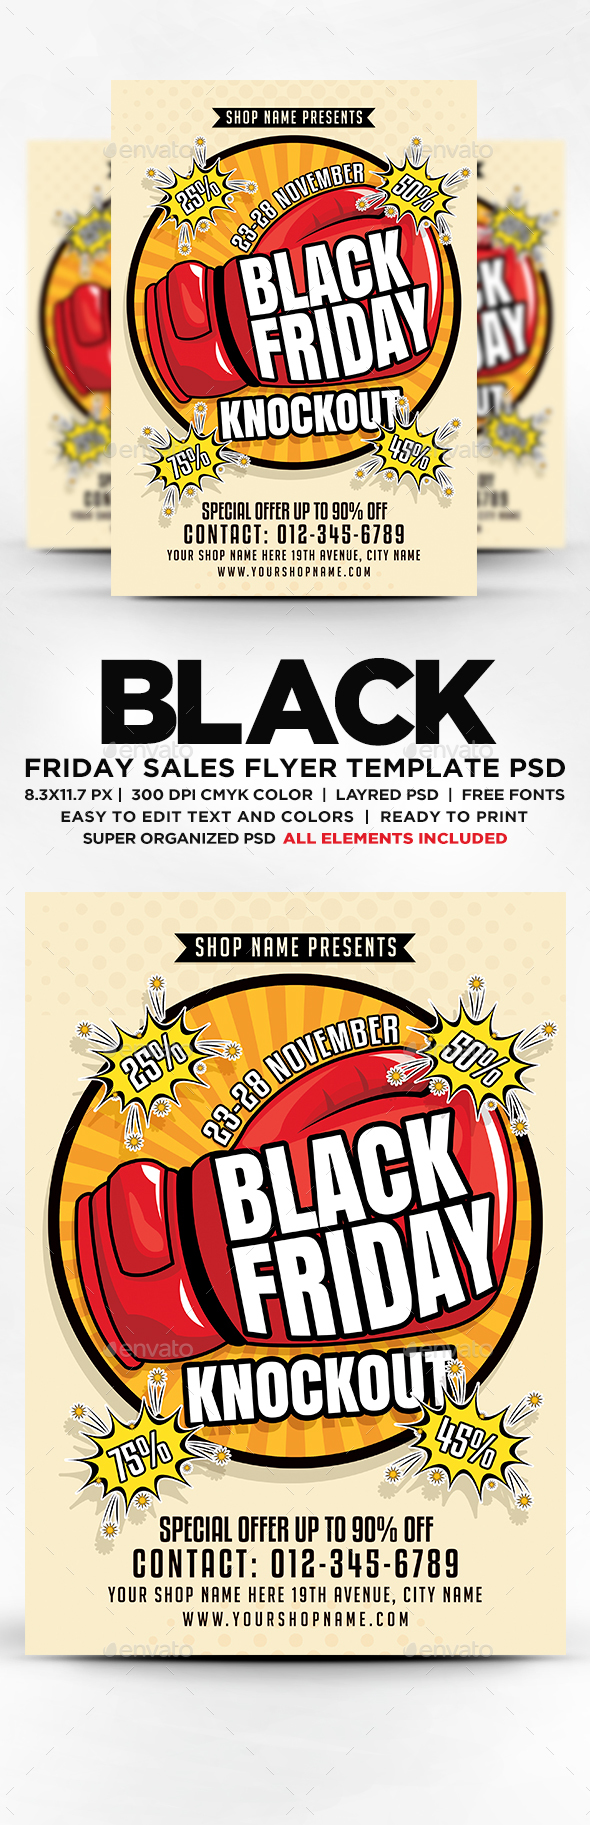 Black Friday Knockout Sales Flyer